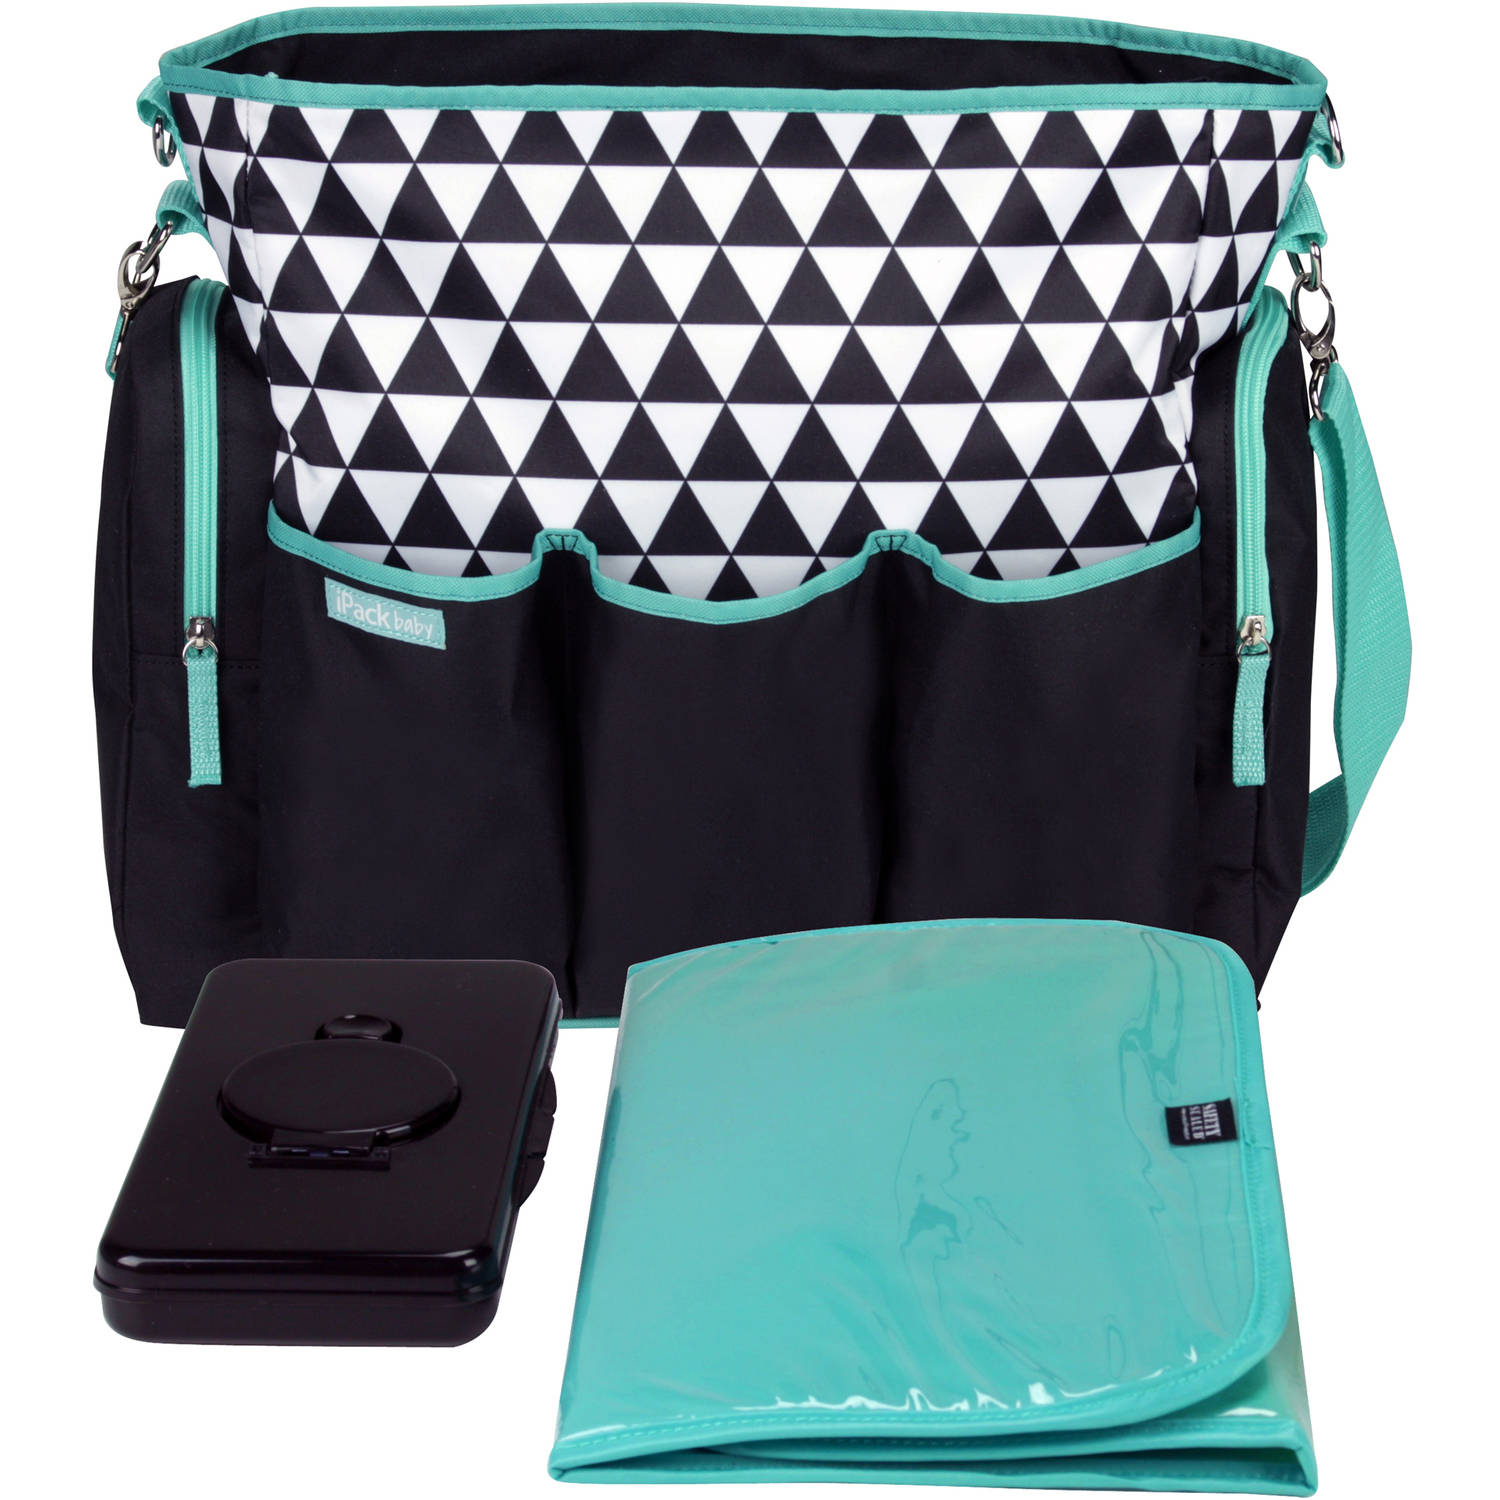 ipack baby 3piece diaper bag set blackteal - Baby Diaper Bags